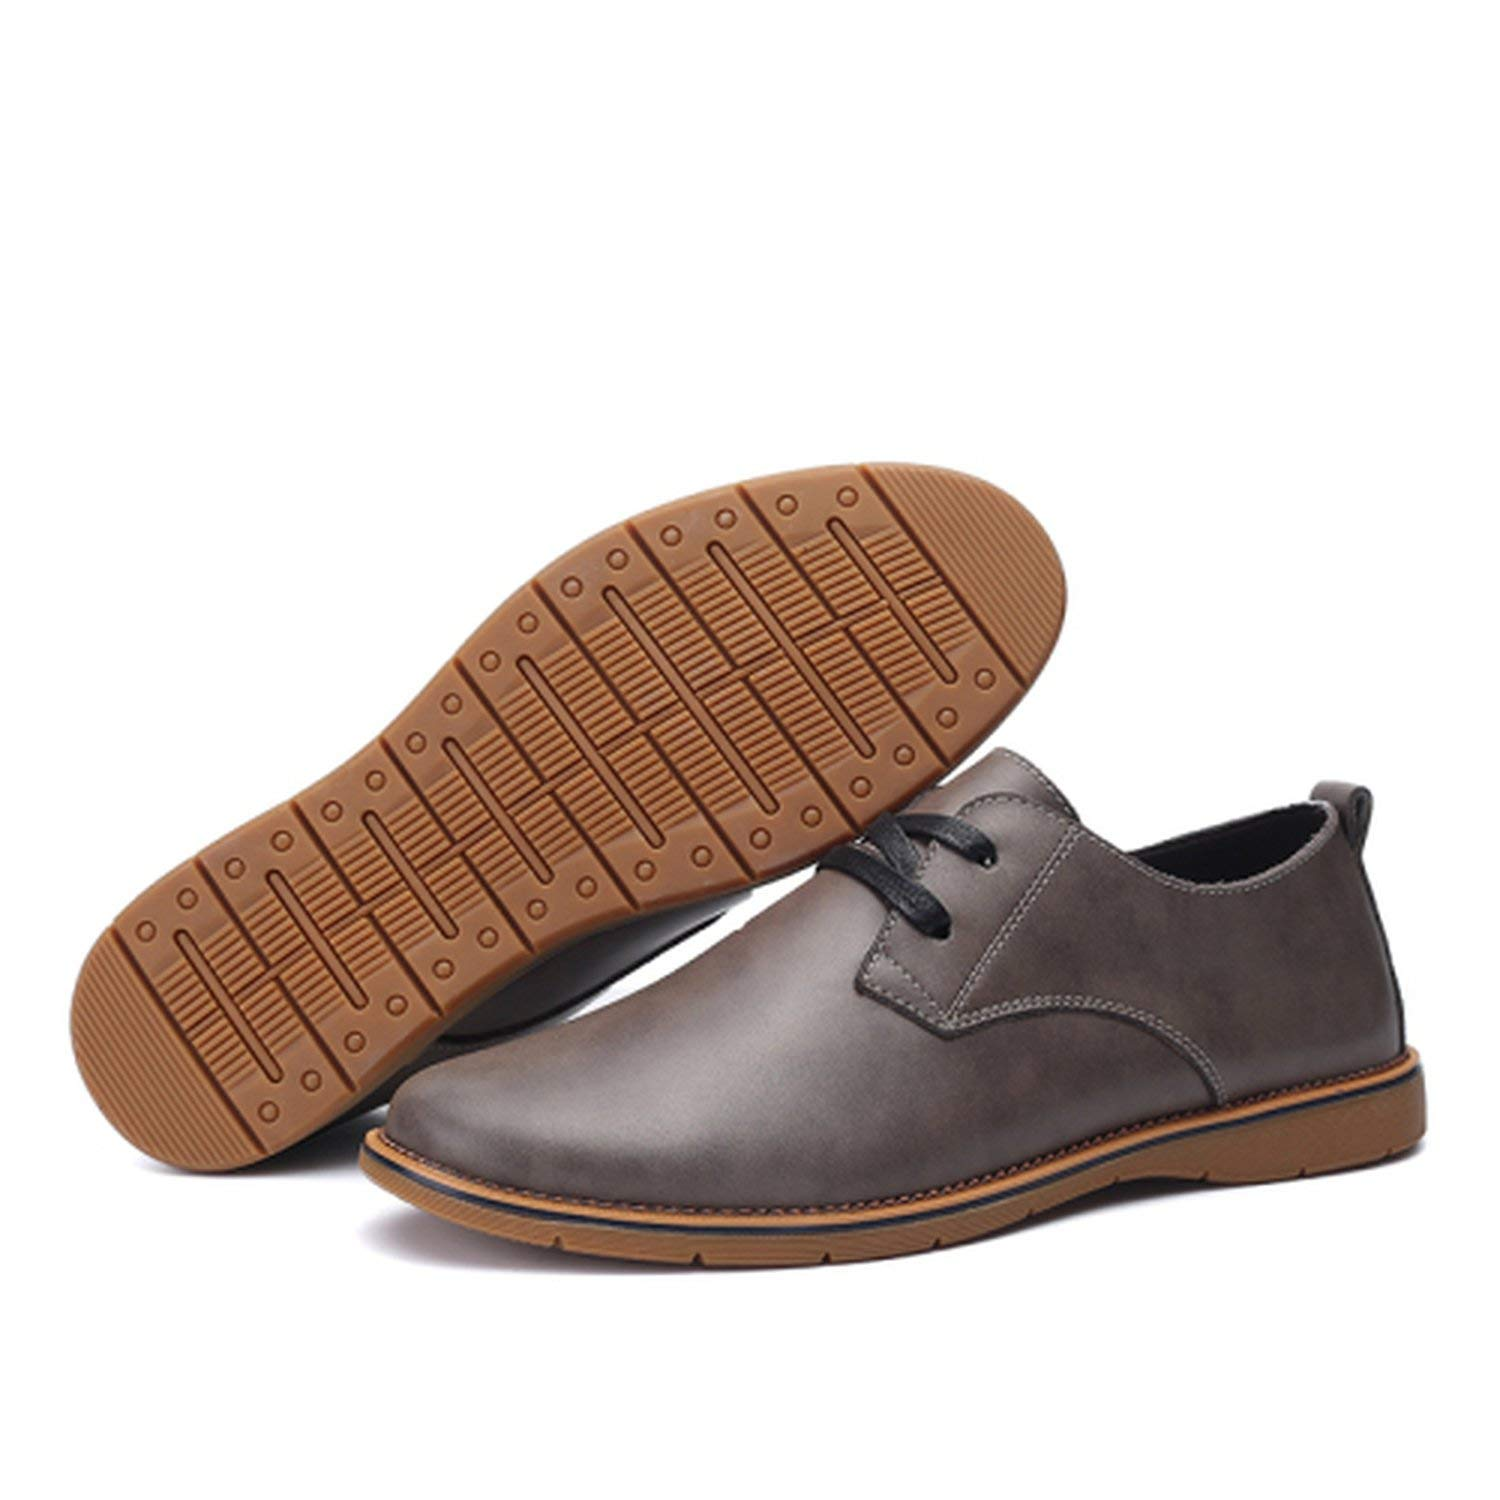 Memoriesed Men Casual Leather Shoes Winter Shoes Size 37-44 Warm Plush Lining Solid Color Man,Grey,7